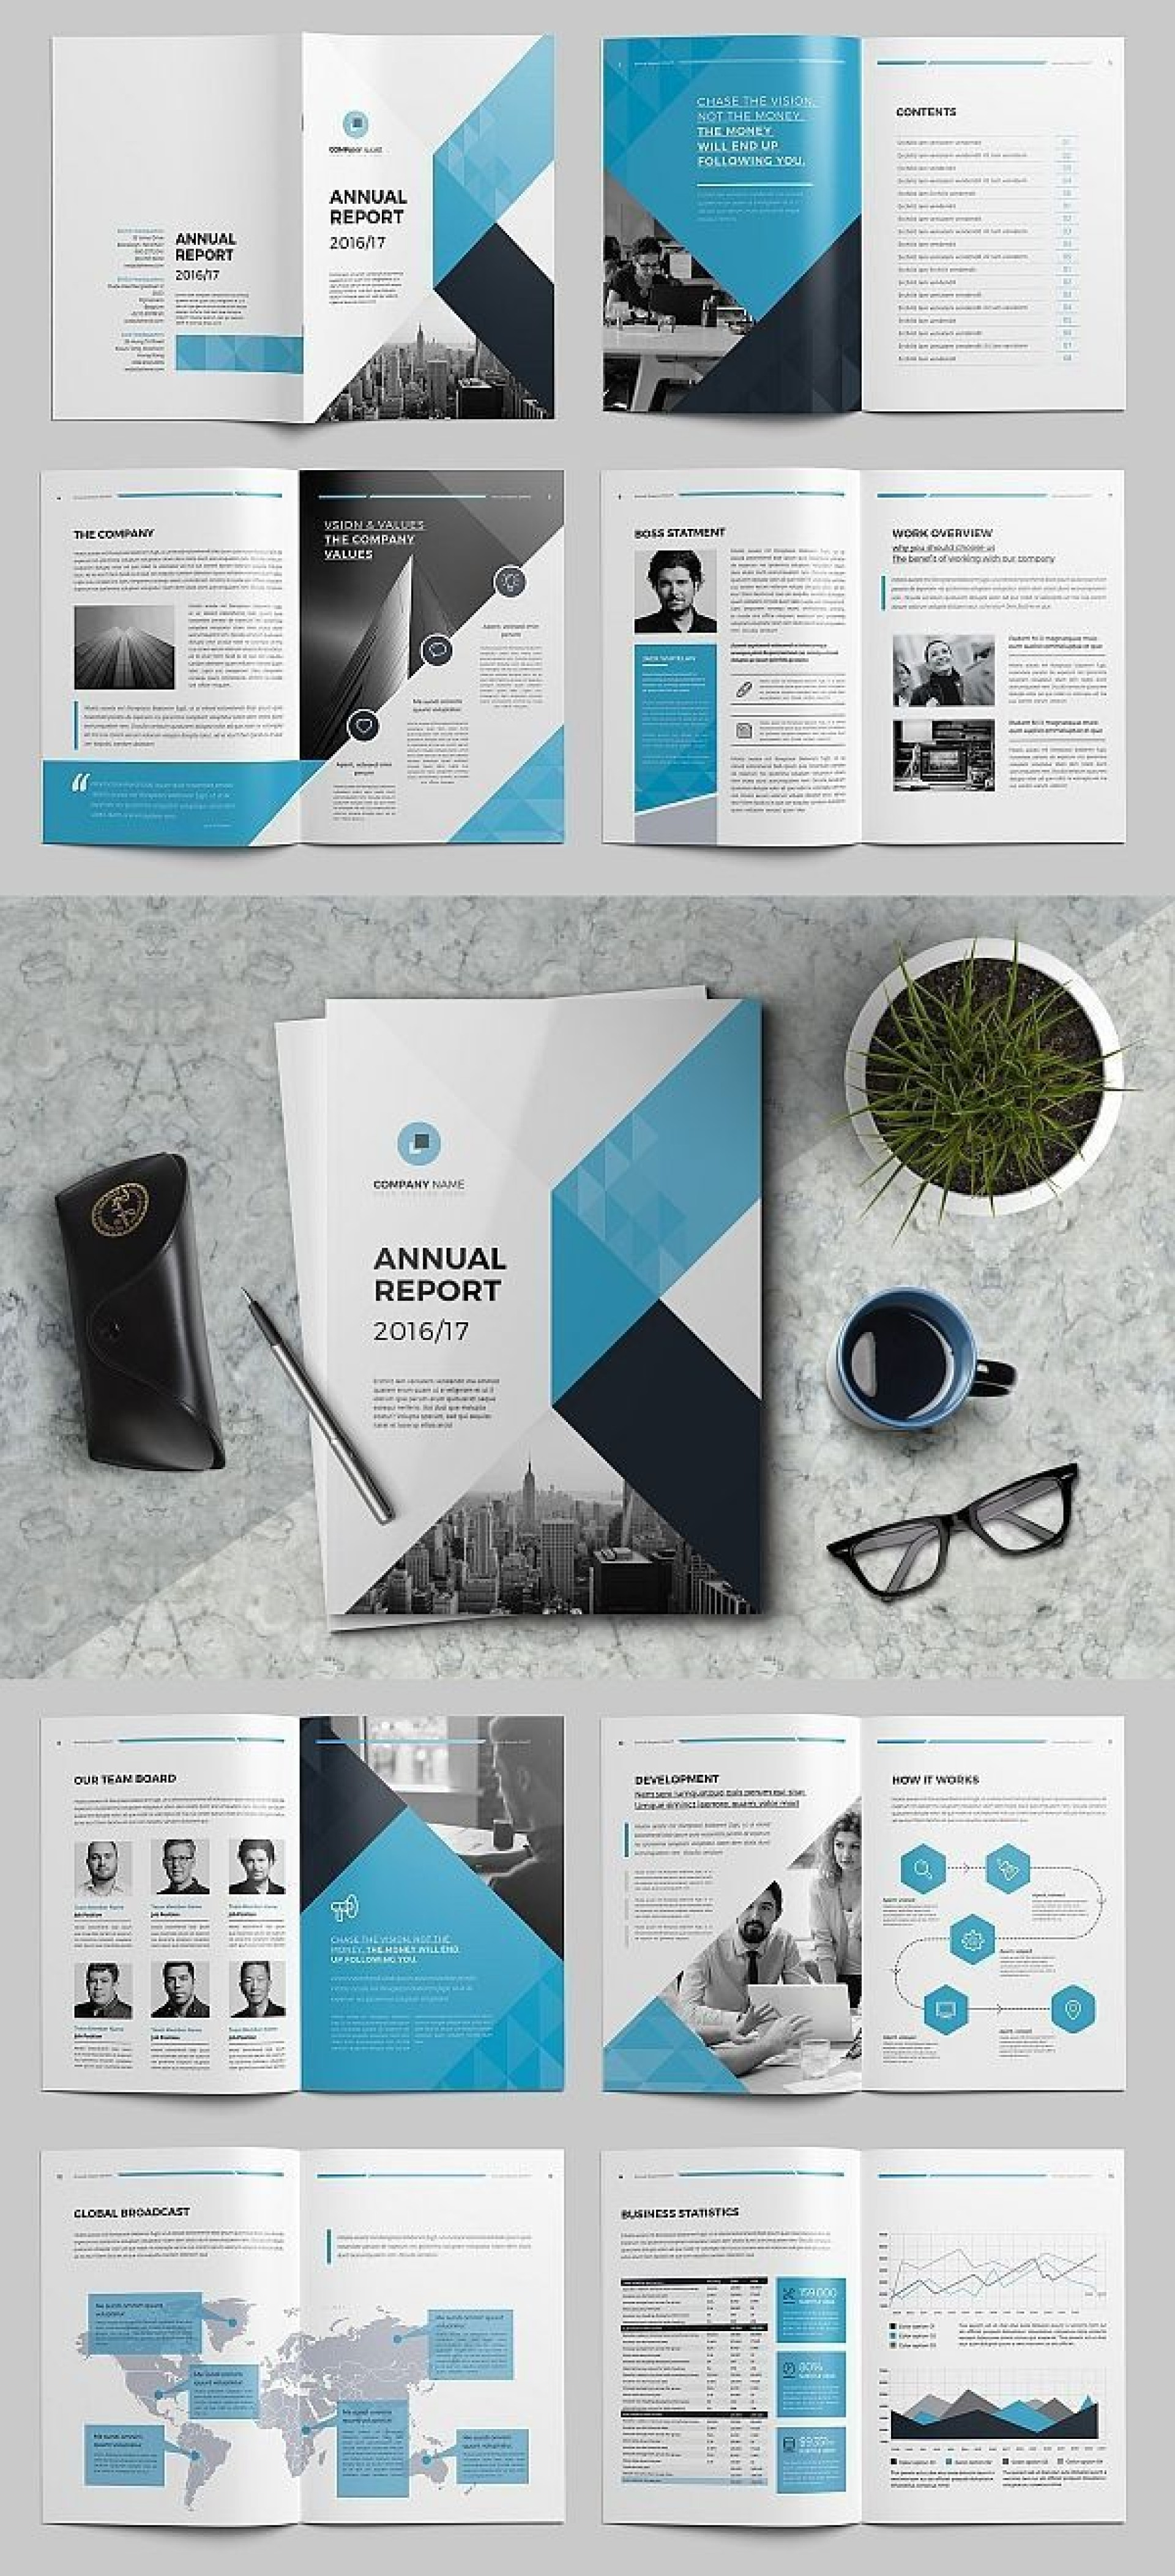 008 Fascinating Annual Report Design Template Indesign Photo  Free Download1920